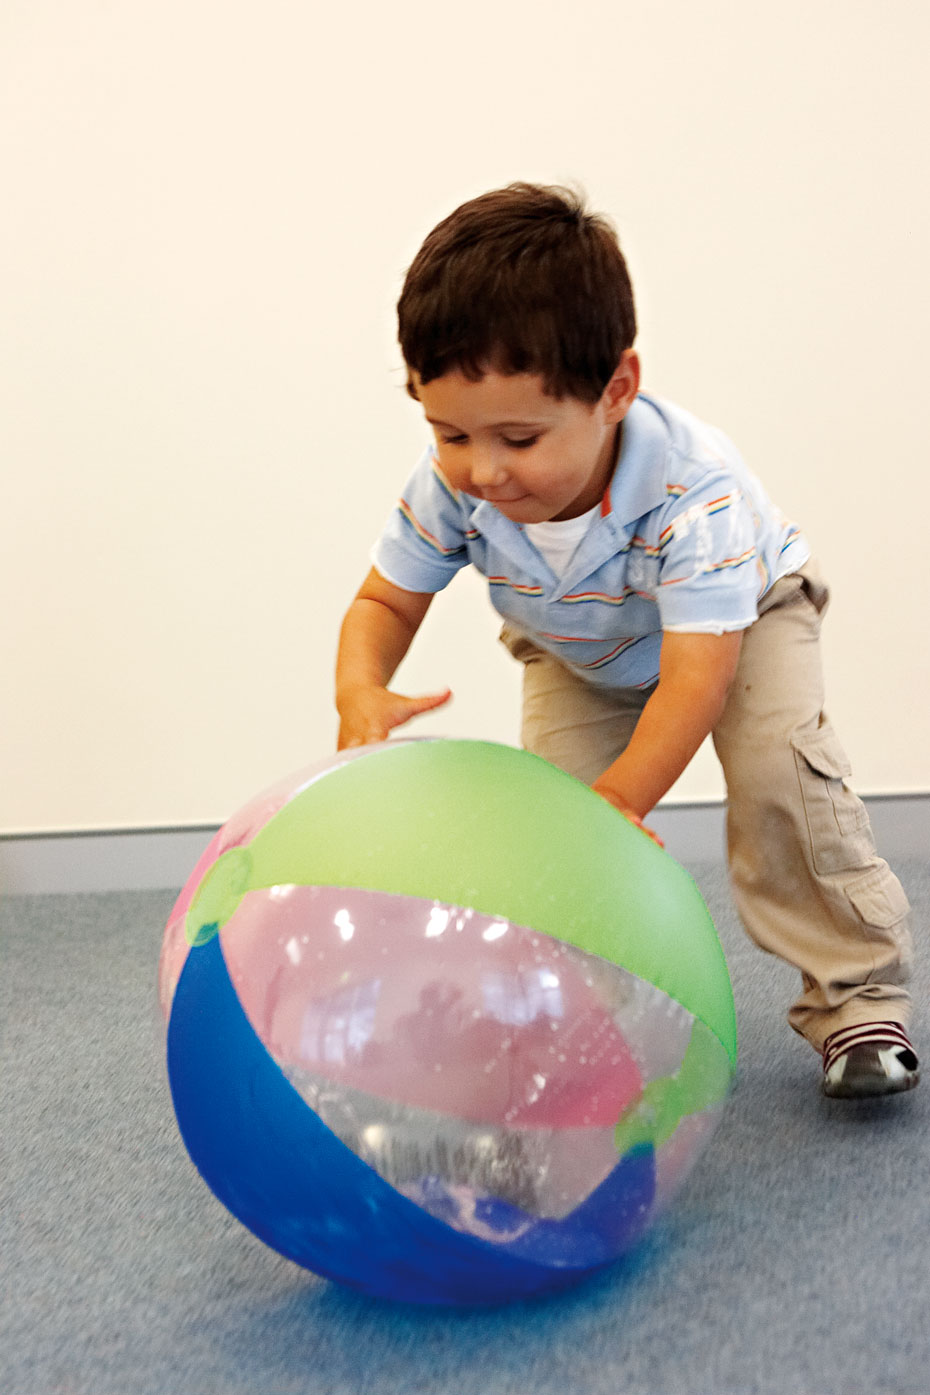 A young boy standing over and reaching out for a rainbow beach ball.